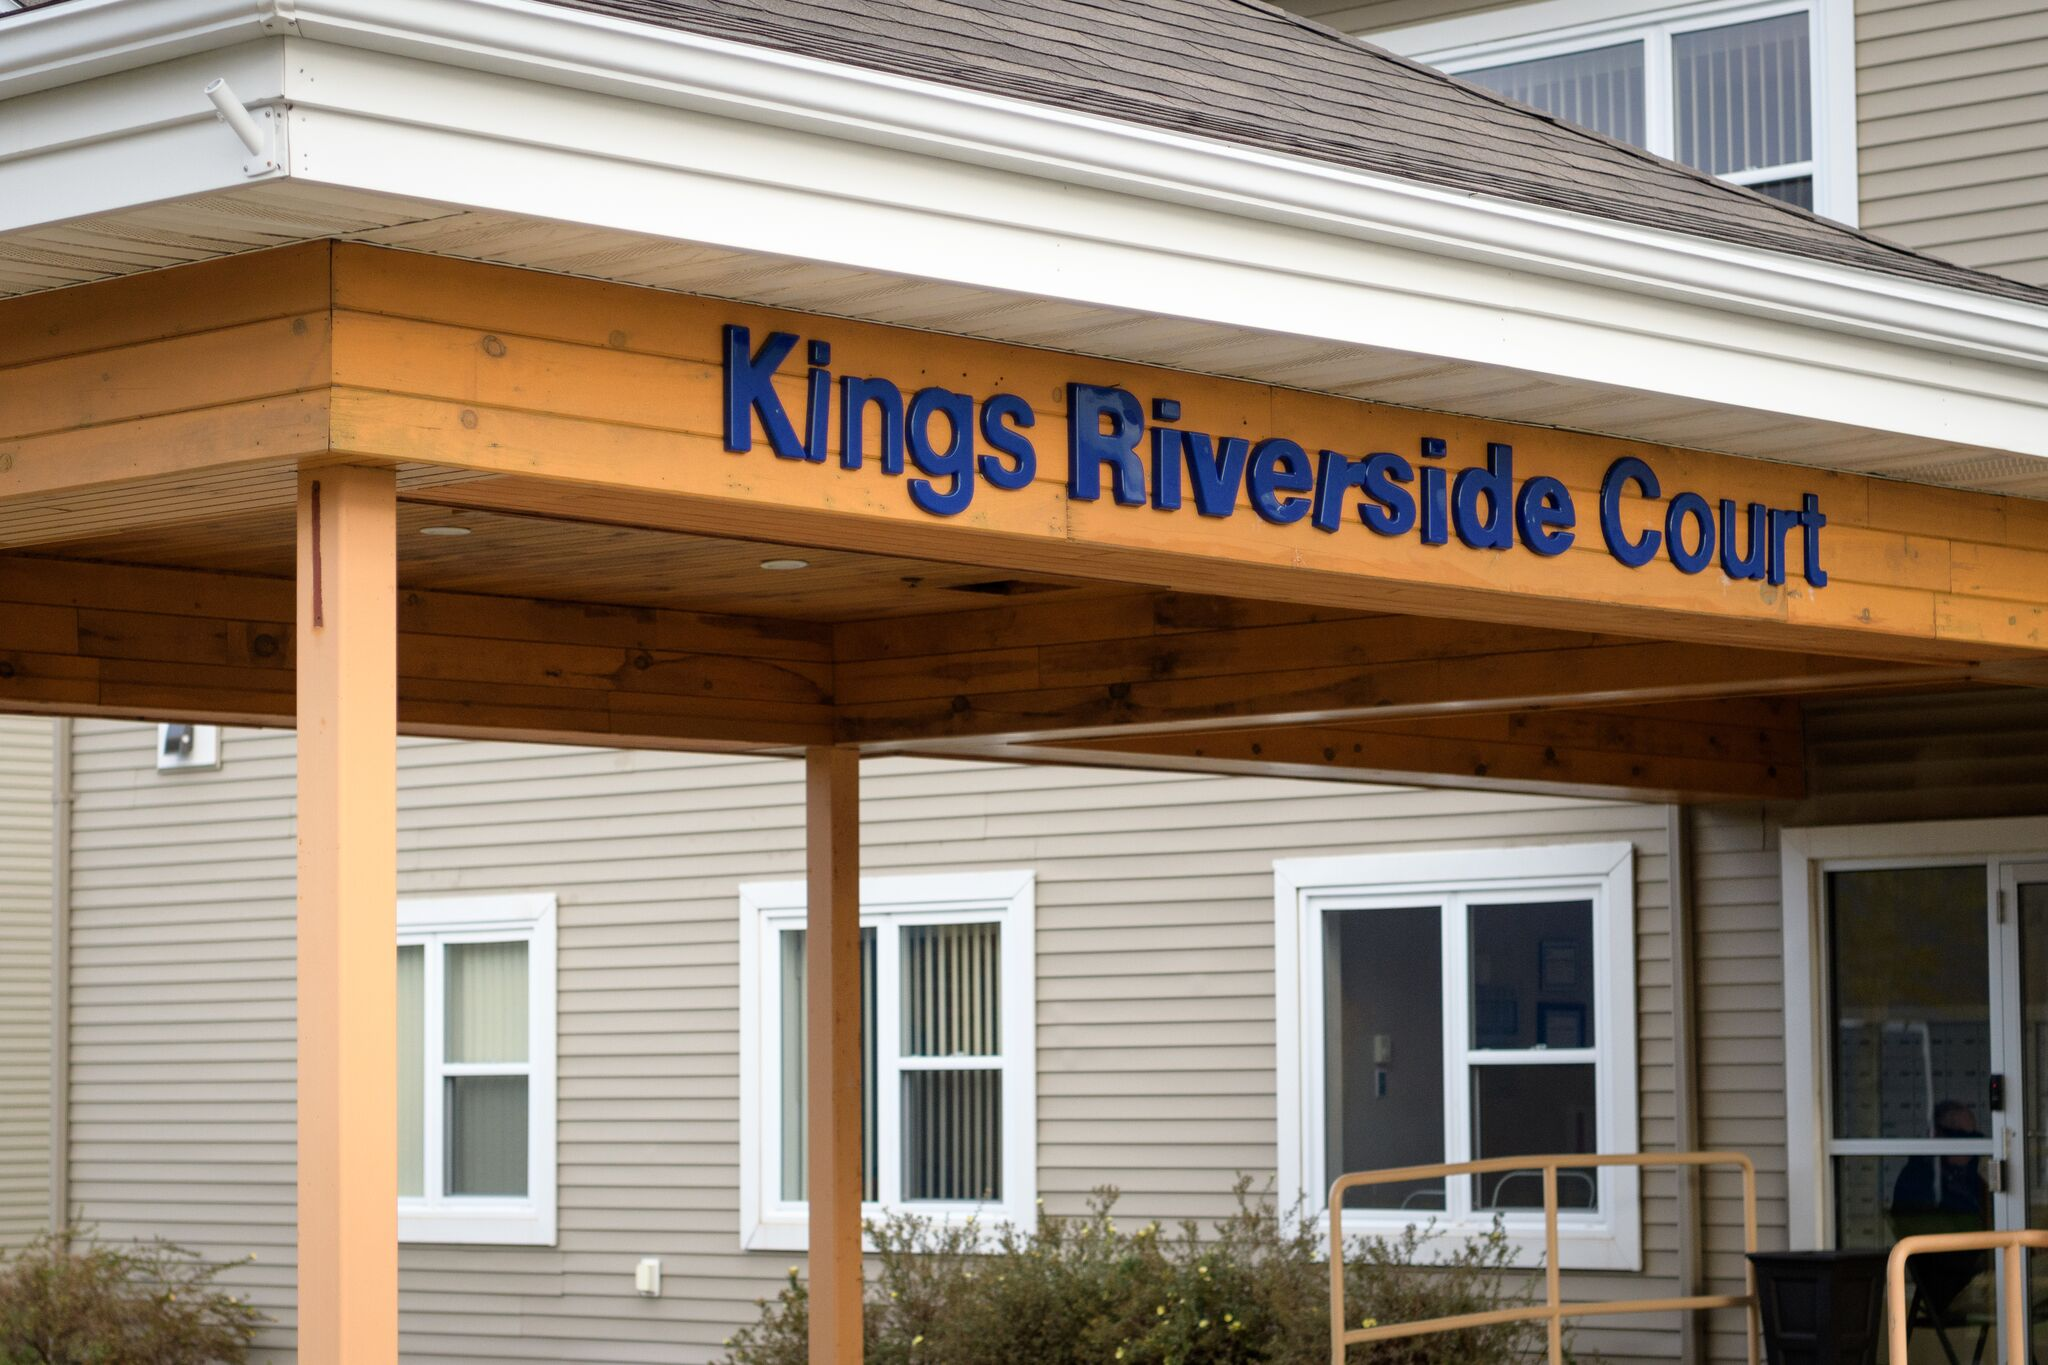 Book a complimentary tour - Spend an afternoon with us, experience our dining room, speak to some of our residents, and see all that KRC has to offer. See for yourself why Kings Riverside Court is the best choice for you or your loved one.Call Krista at 902-679-1992 or email us at info@kingsriversidecourt.com